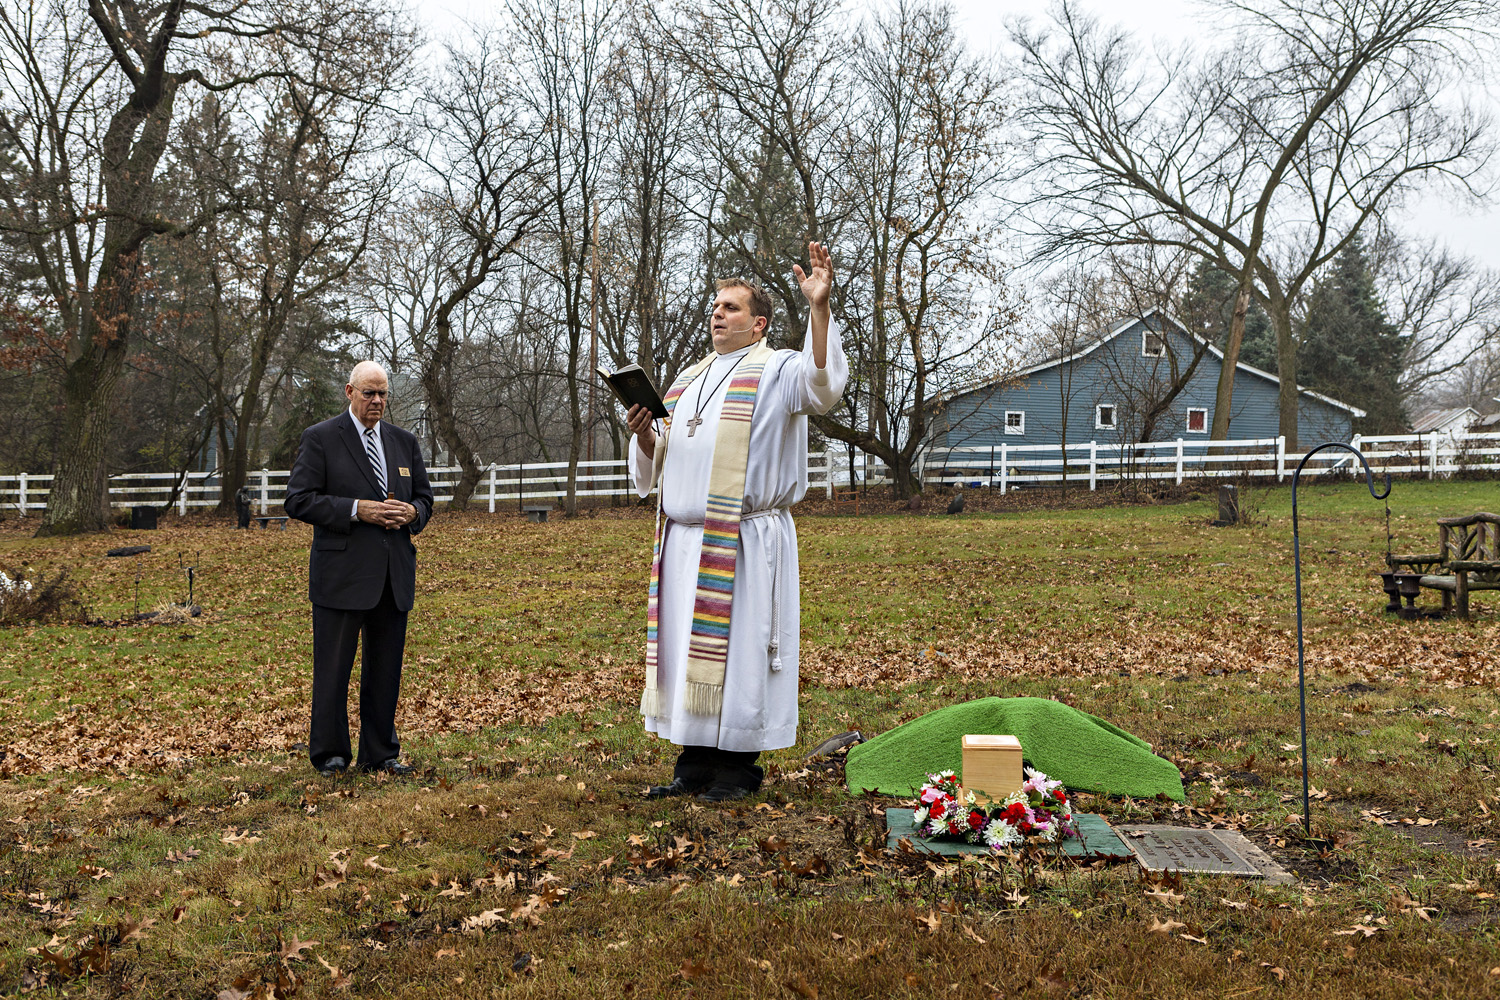 Pastor Joel Martin of Christ Lutheran Church presides over the burial of the woman's ashes next to the remains of her husband in Oakland Cemetery.